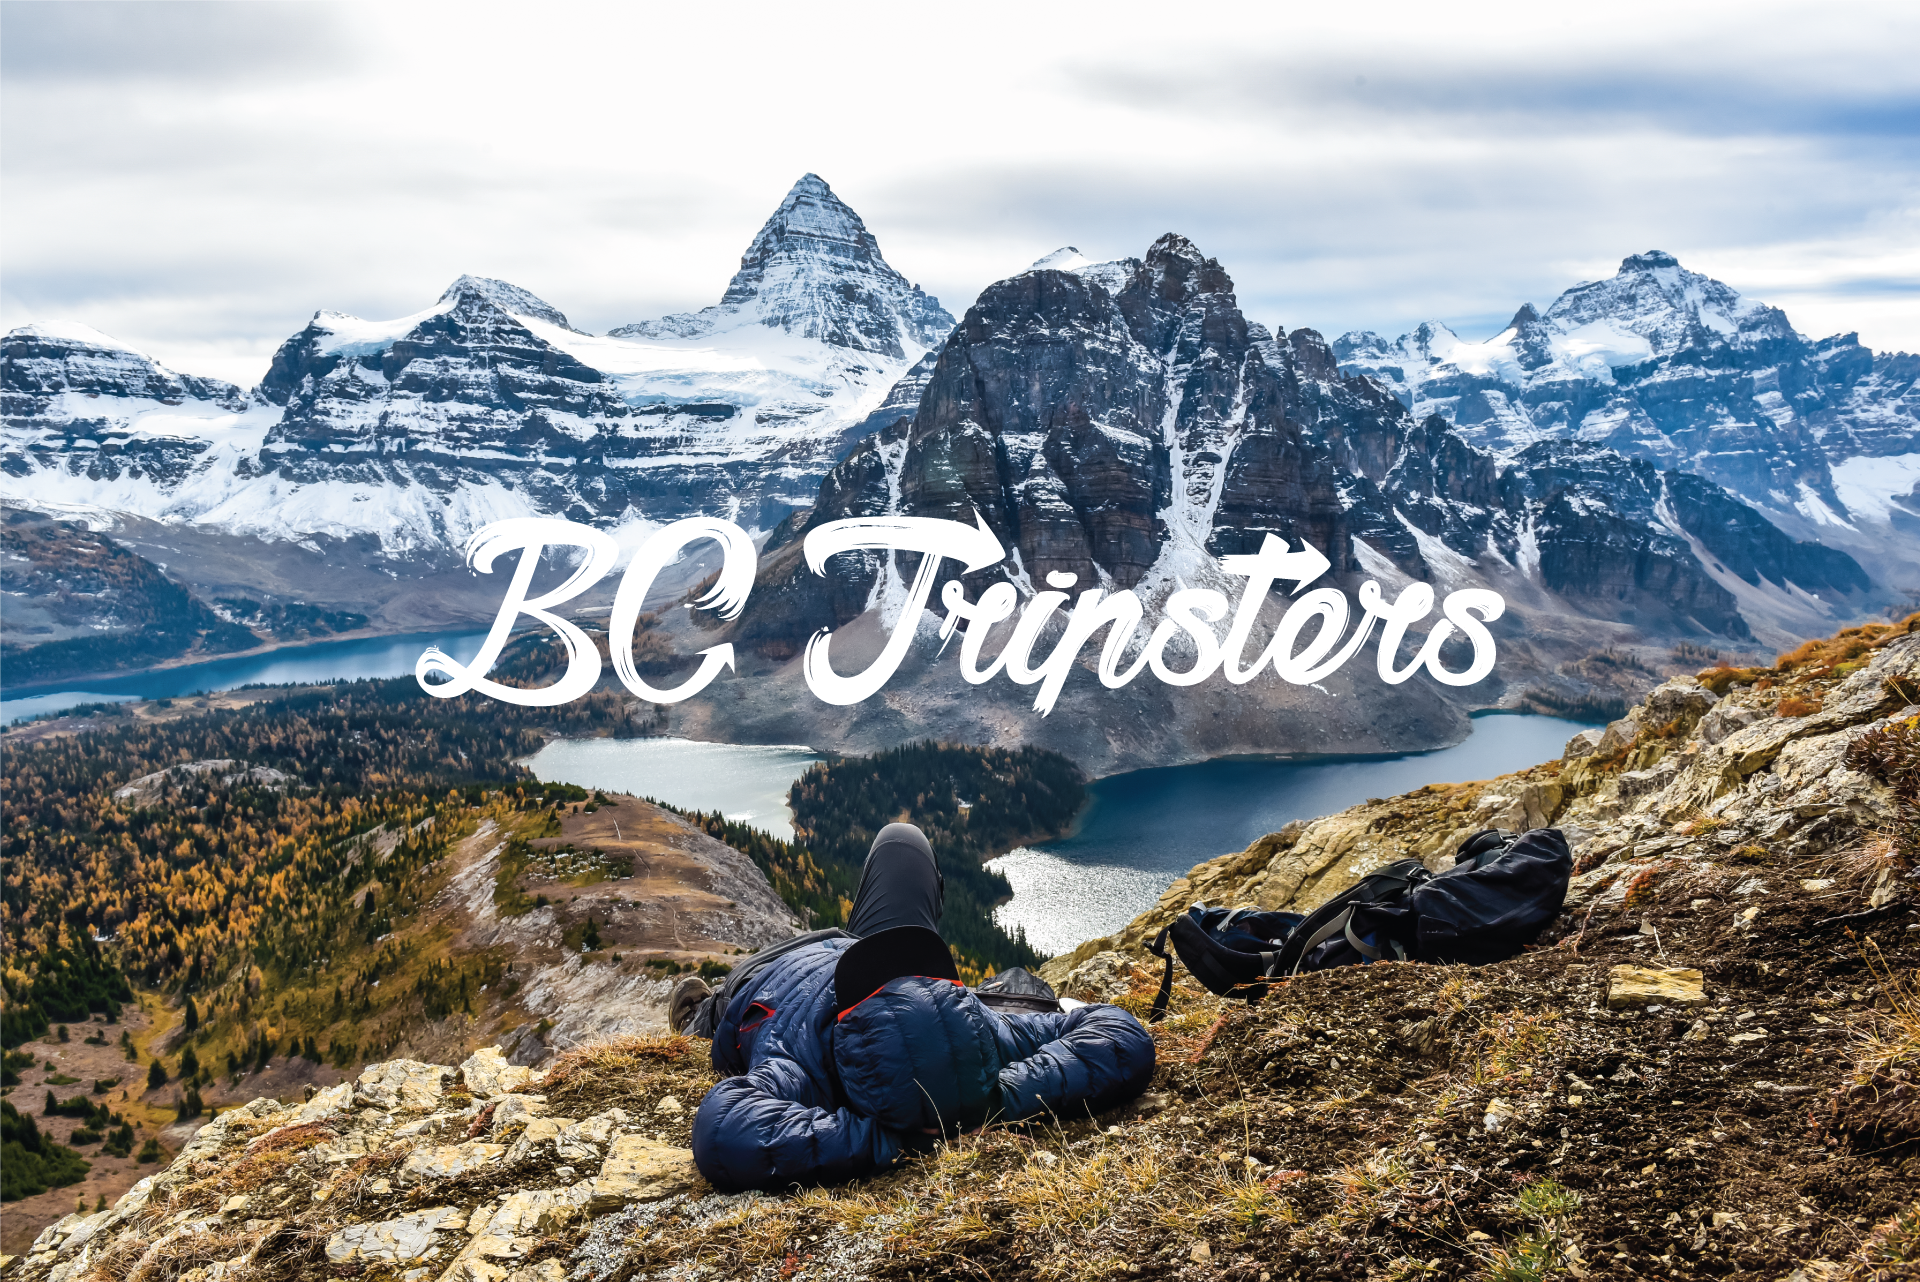 BC Tripsters - Branding CreationMarketing StrategyWeb Design